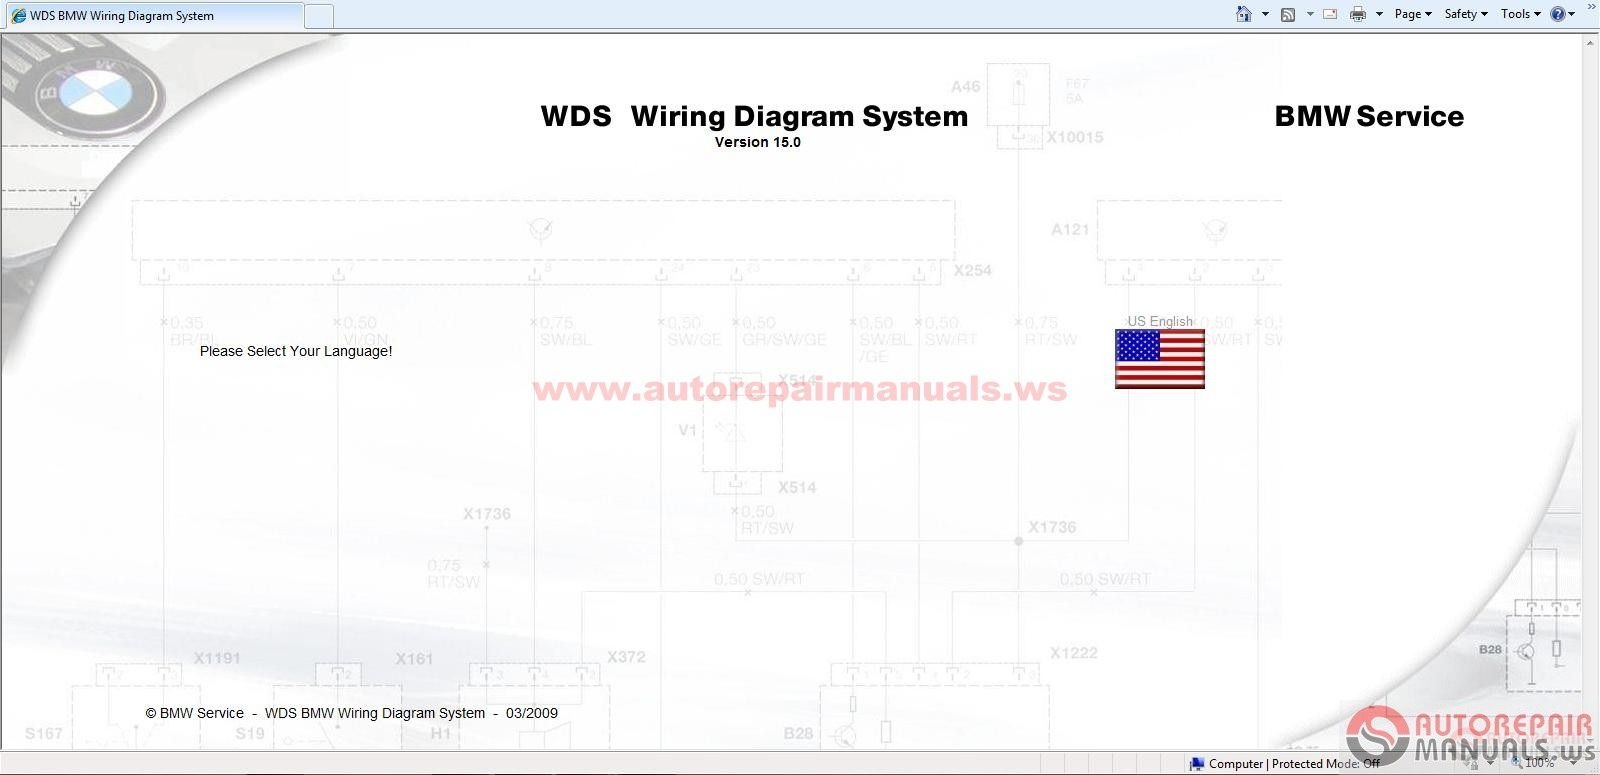 BMW_WDS_v15_and_MINI_WDS_v7_Wiring_Diagram_System bmw wds v15 and mini wds v7 wiring diagram system free auto wds wiring at bayanpartner.co